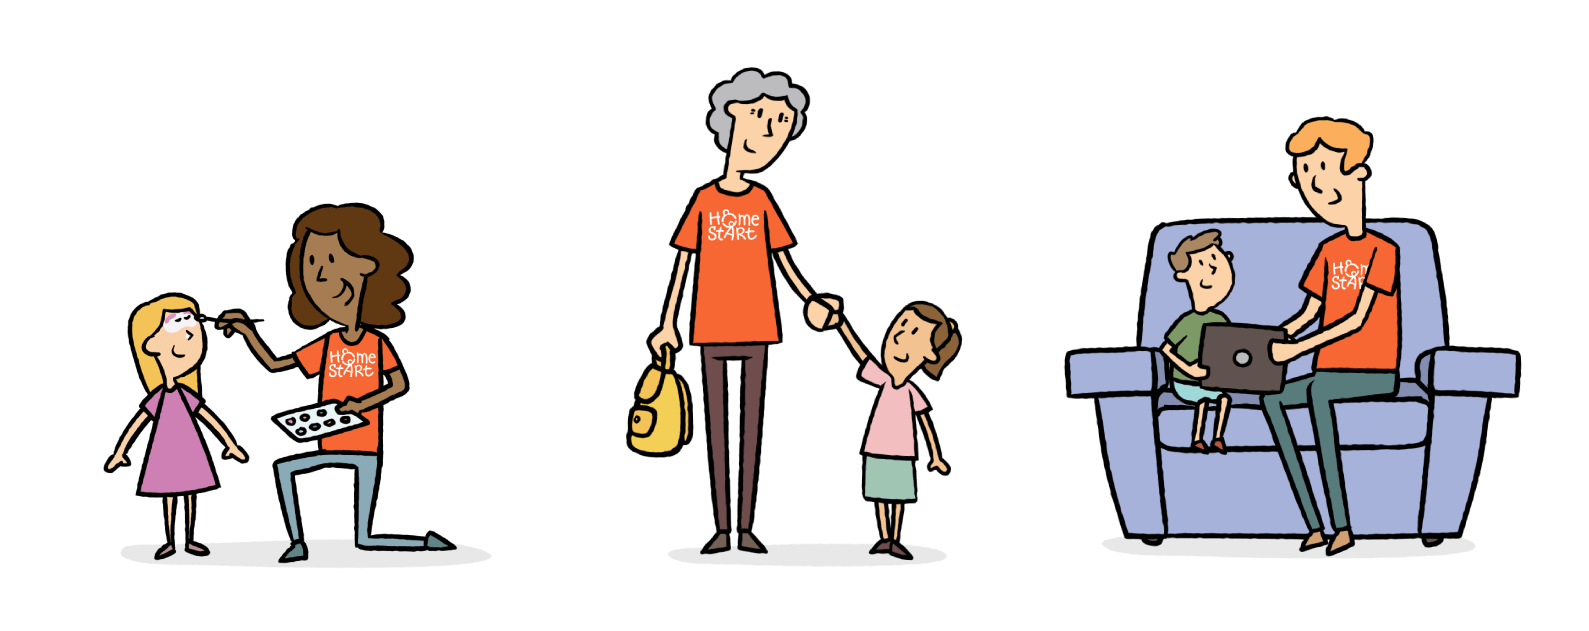 Volunteering clipart charitable. Donate to charity home